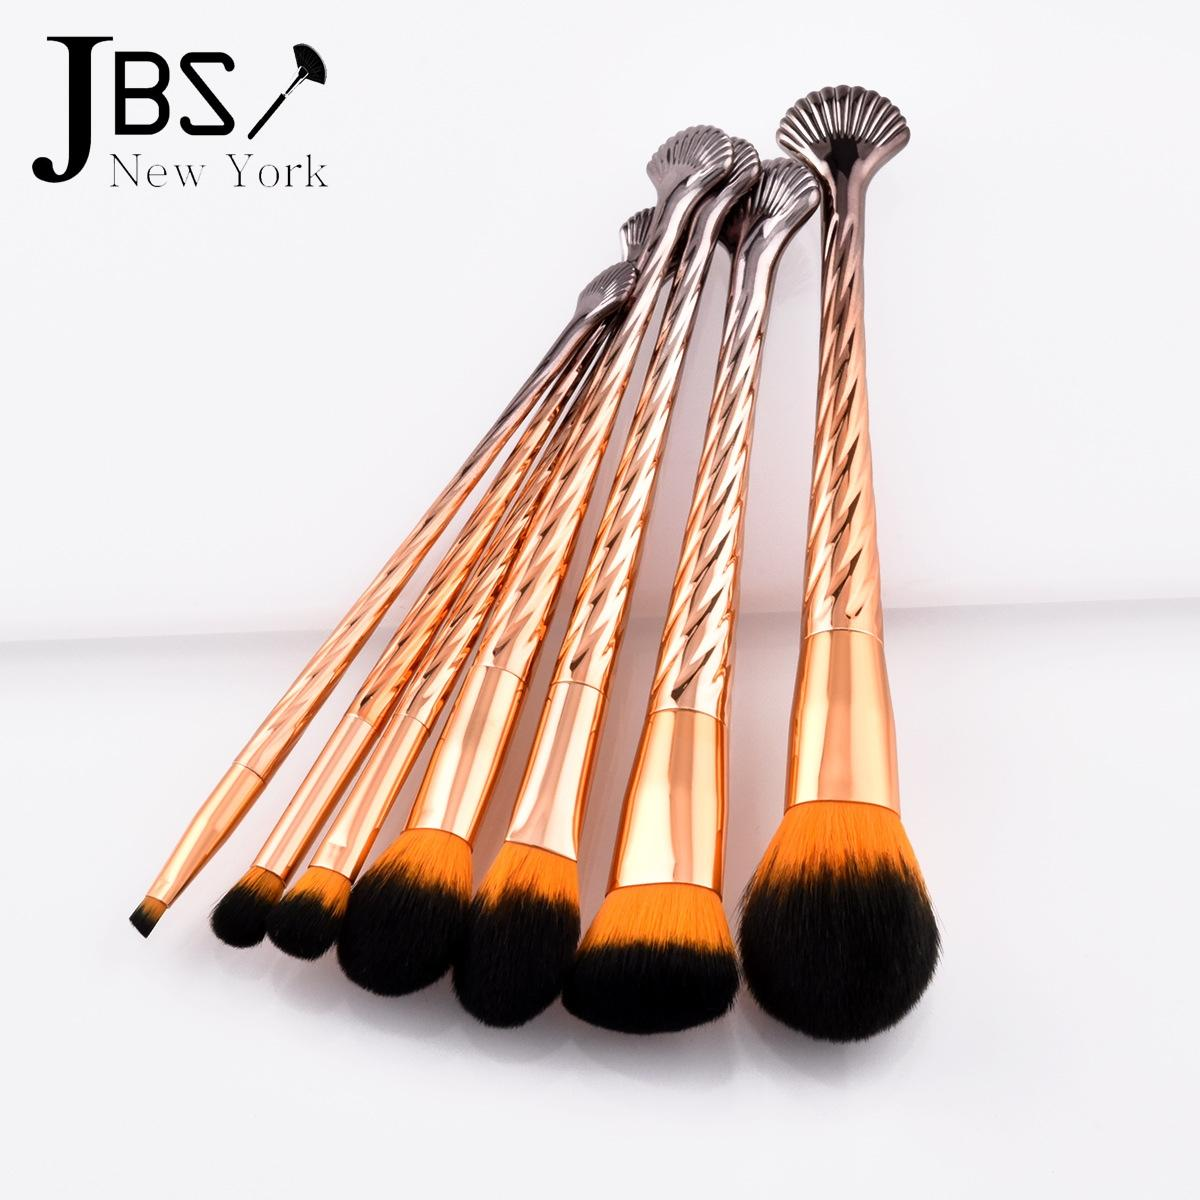 Fitur Jbs New York Kuas Makeup Brush 7 Set Make Up K064 Bundle 12 Eyerush Gold K 046